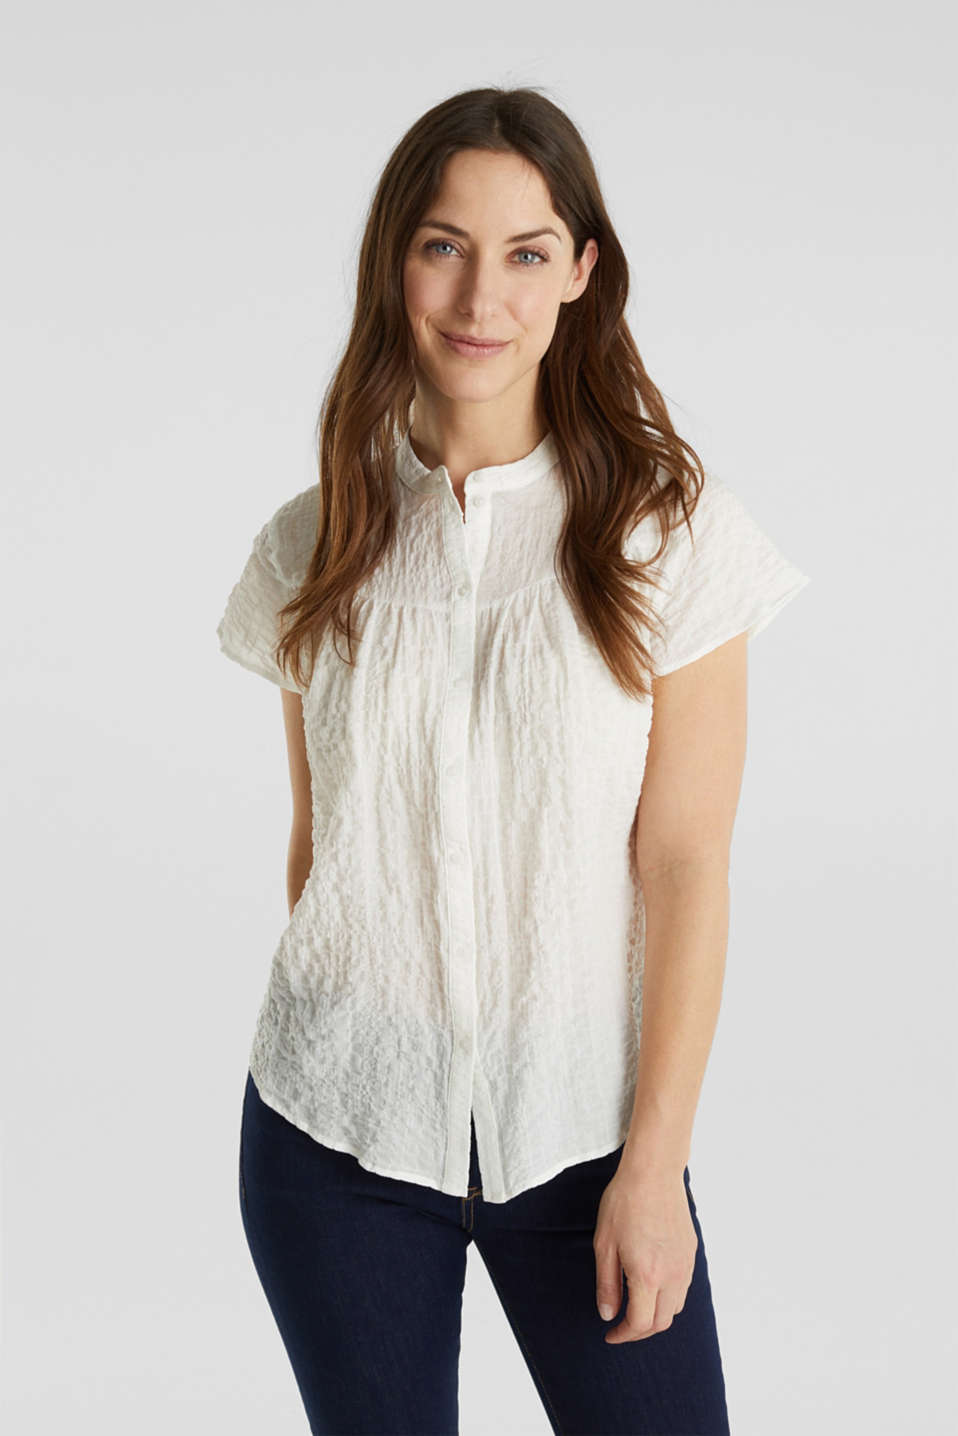 Esprit - Semi-sheer seersucker blouse